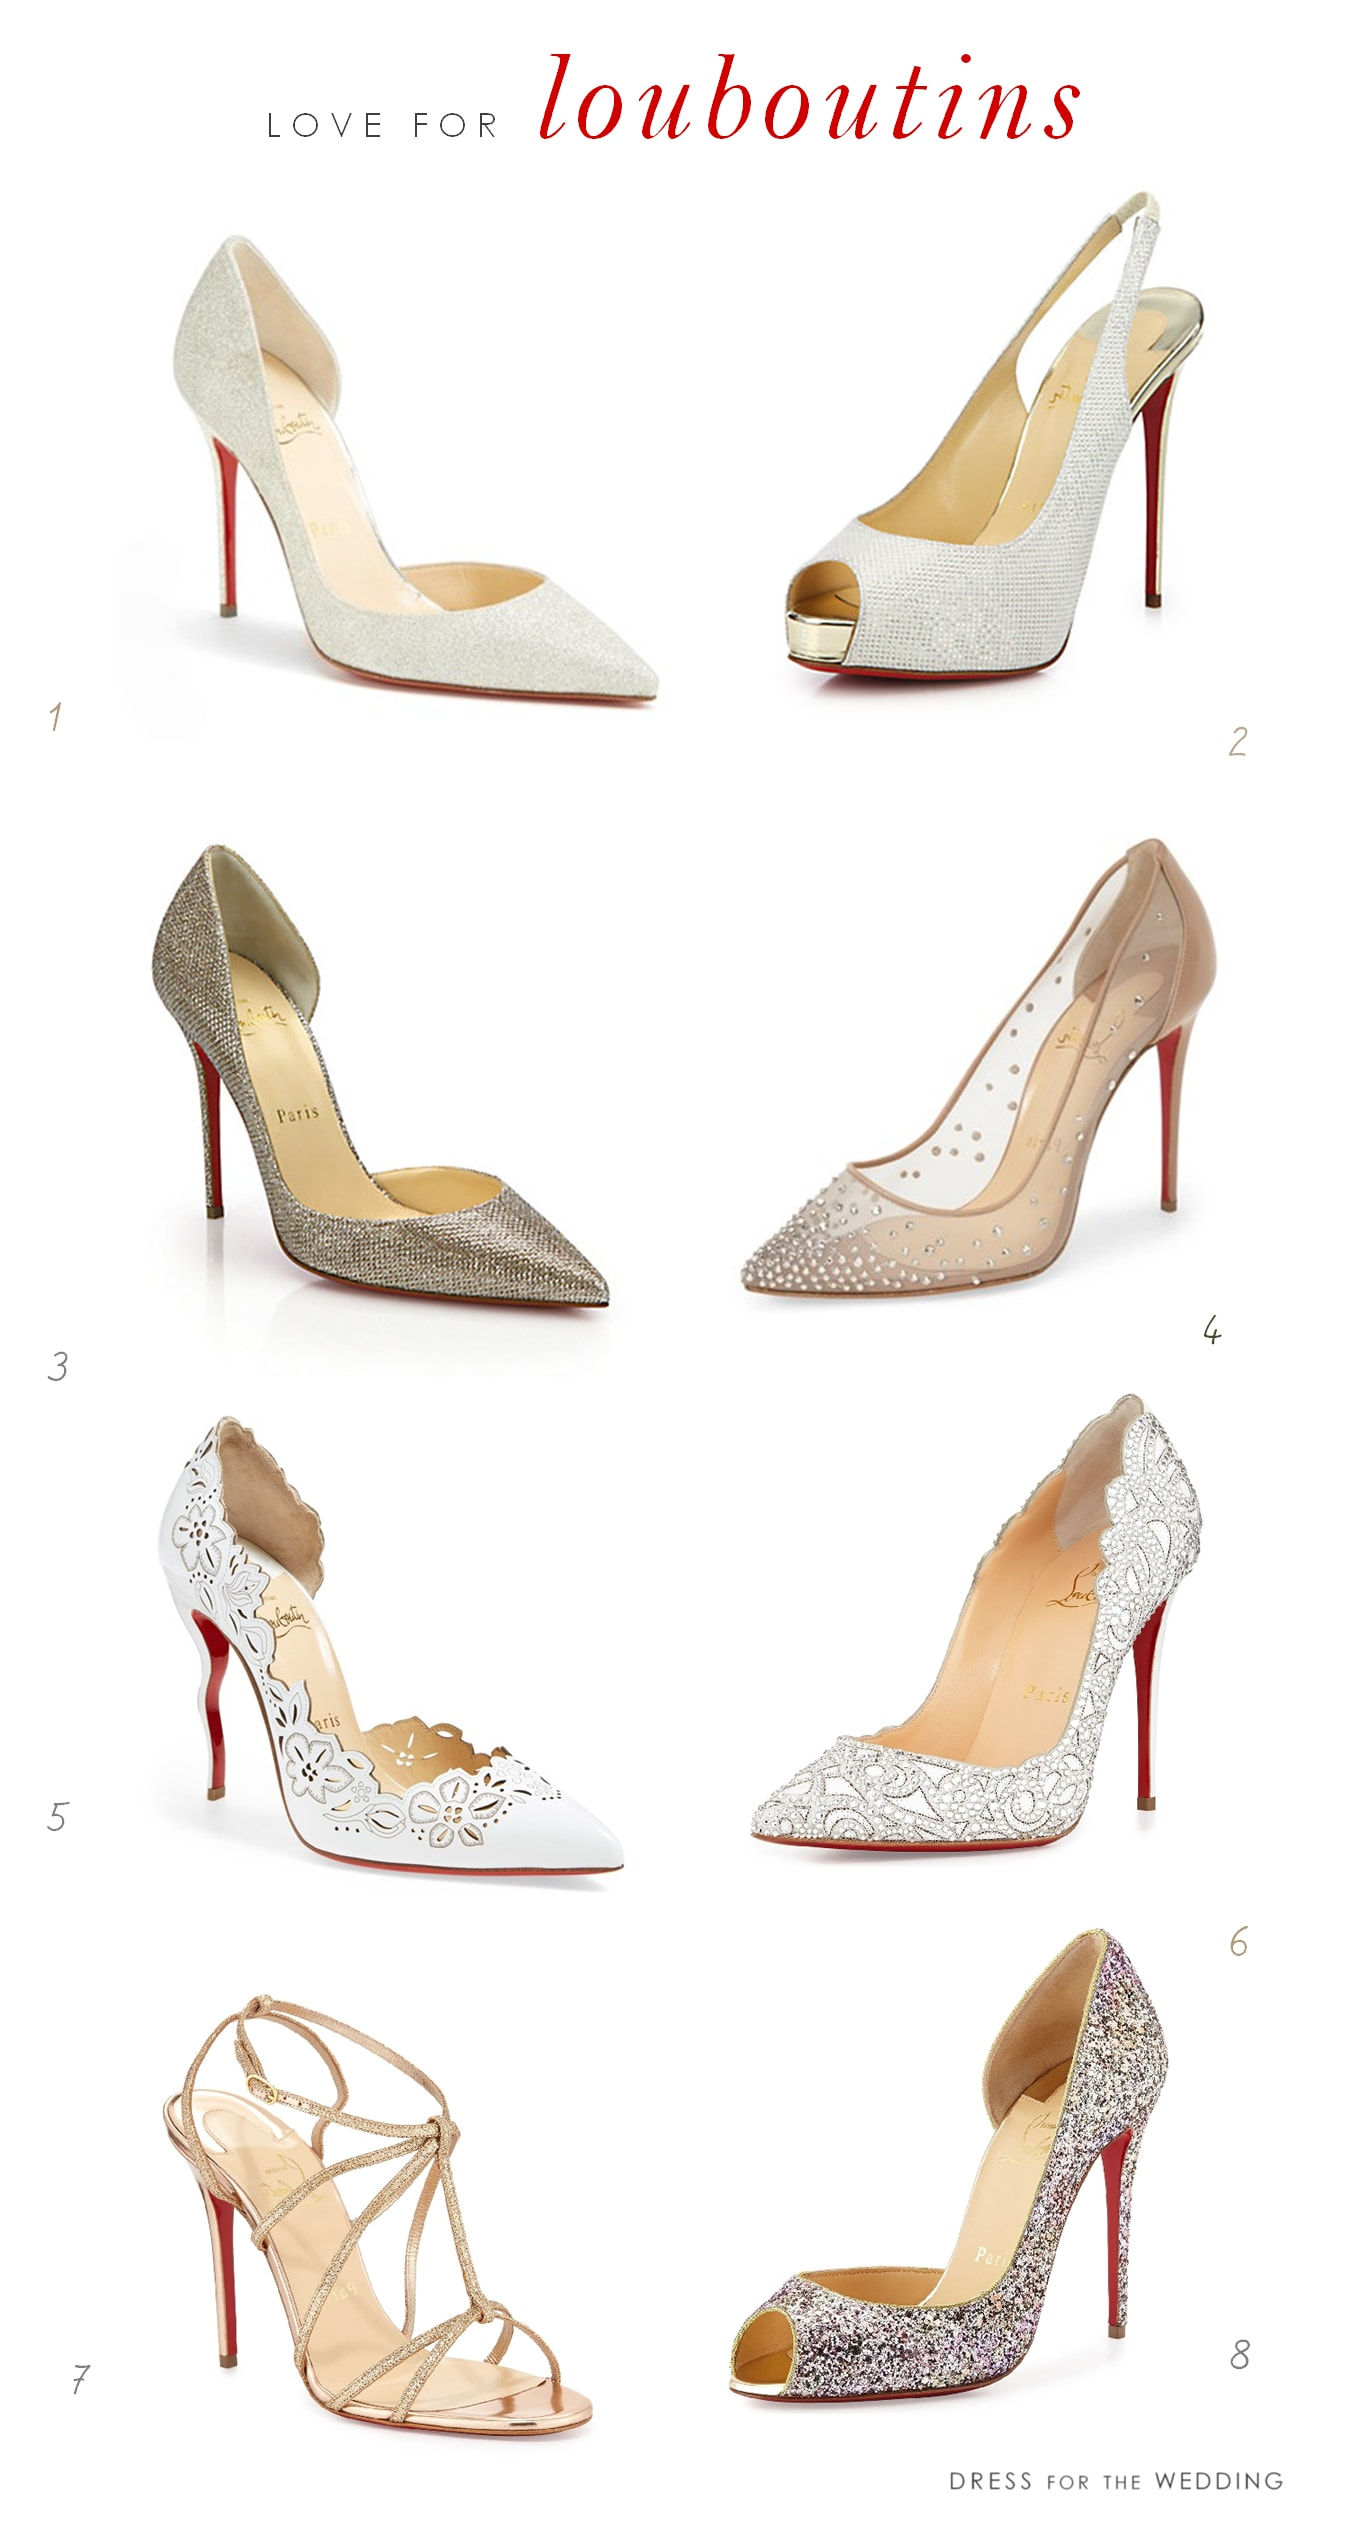 Designer Shoes For Weddings From Christian Louboutin